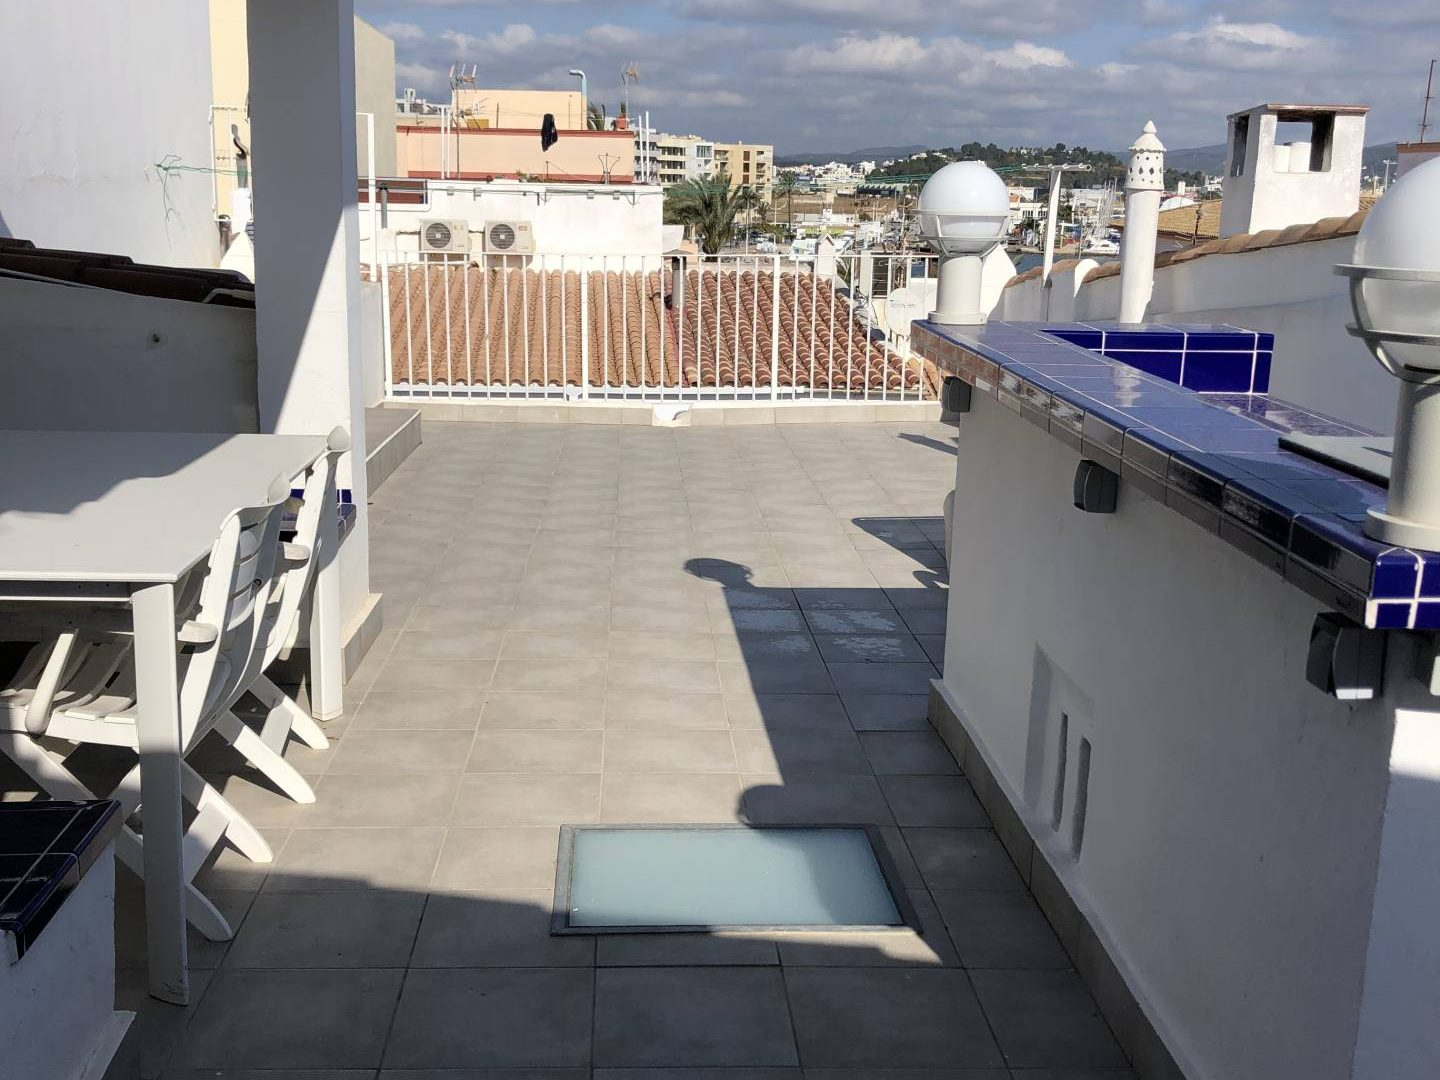 Marina Ibiza, 2 bedroom penthouse for rent